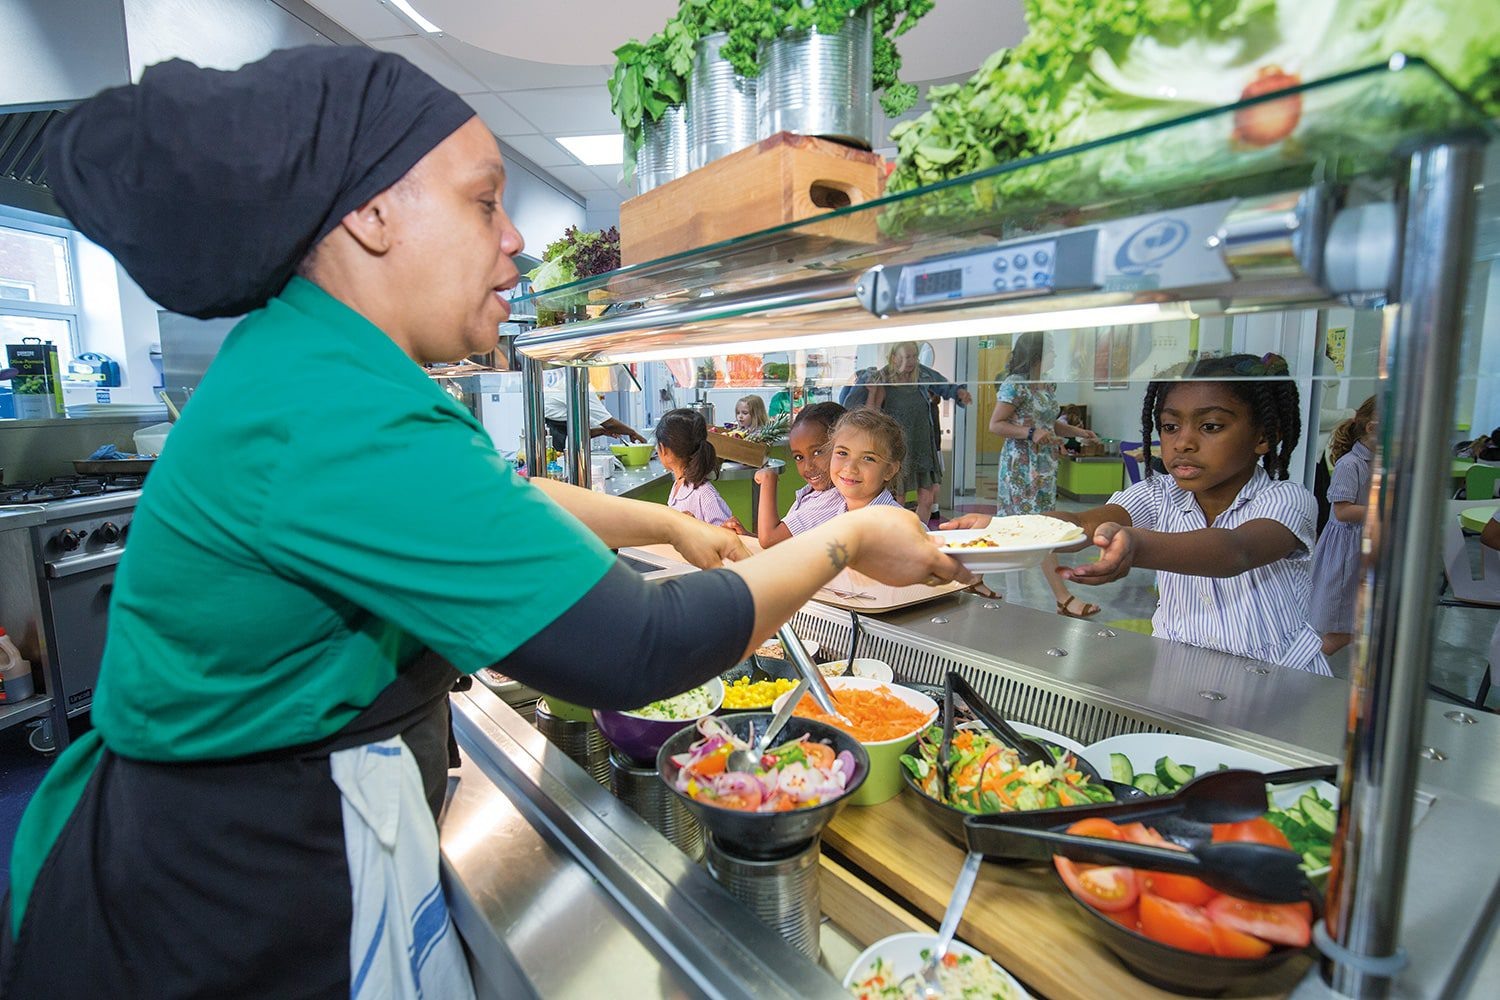 Streatham & Clapham High School — Prep healthy lunch